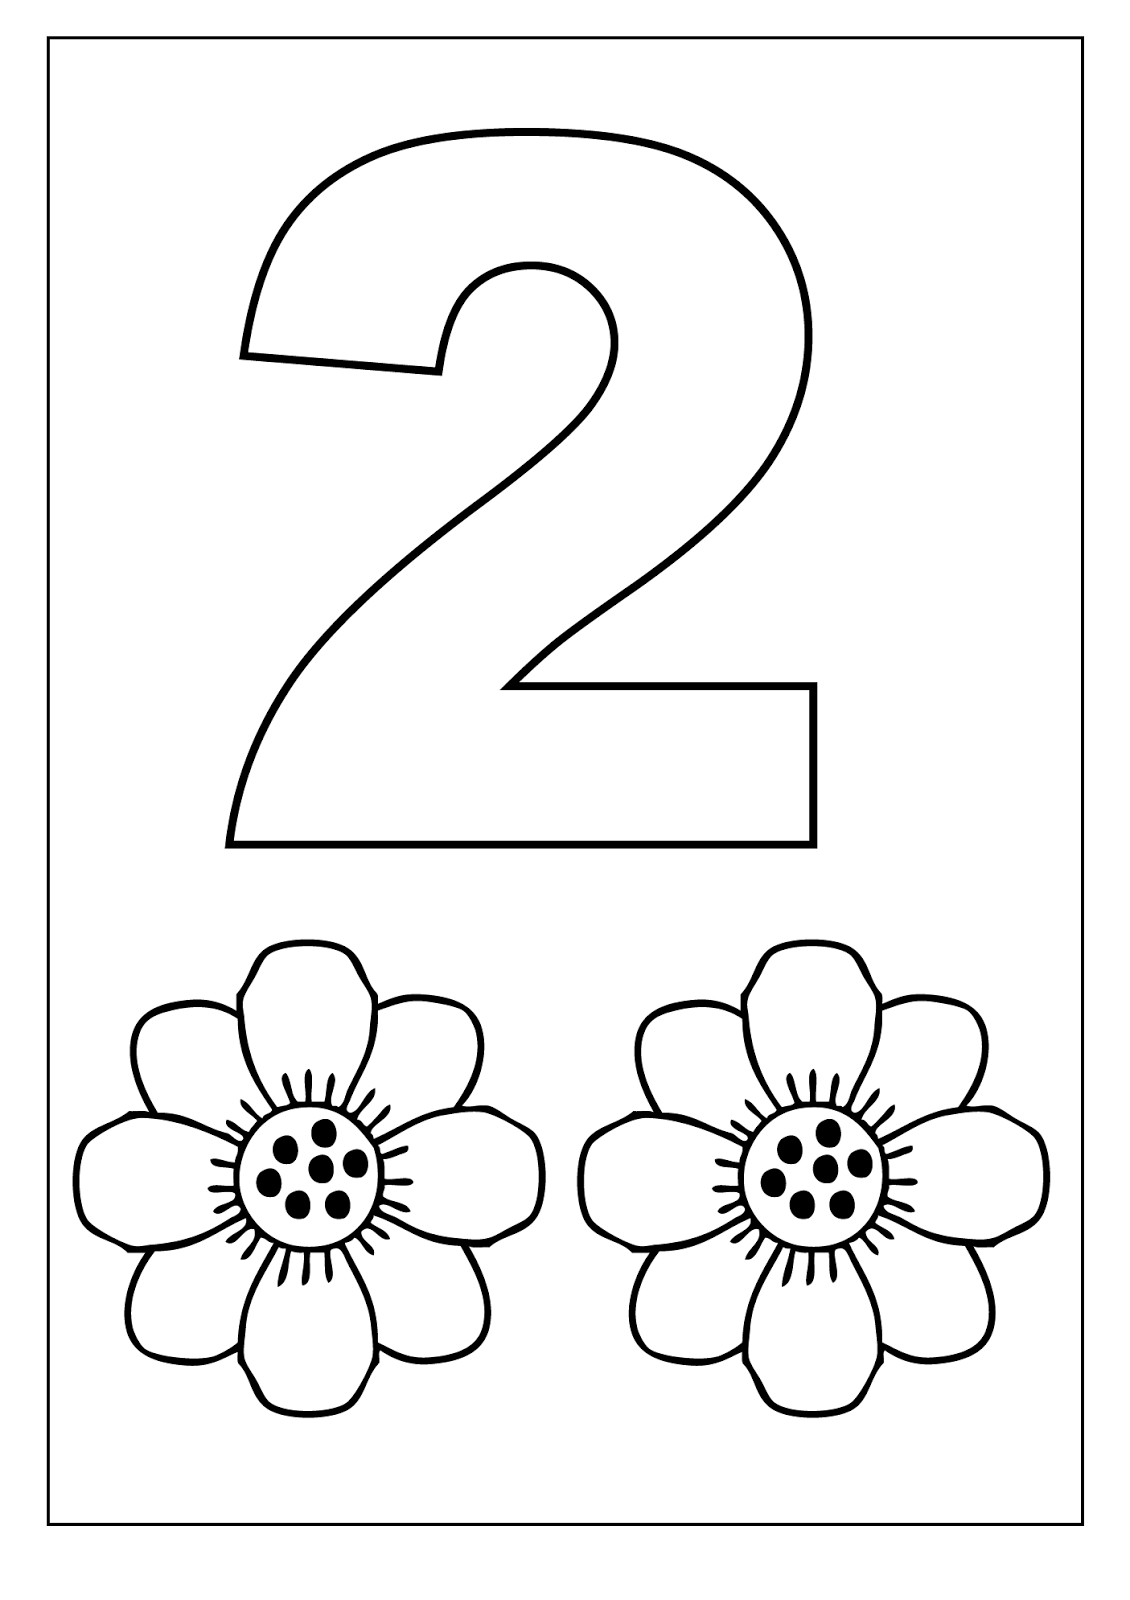 number 2 coloring sheet number 2 coloring page getcoloringpagescom coloring number sheet 2